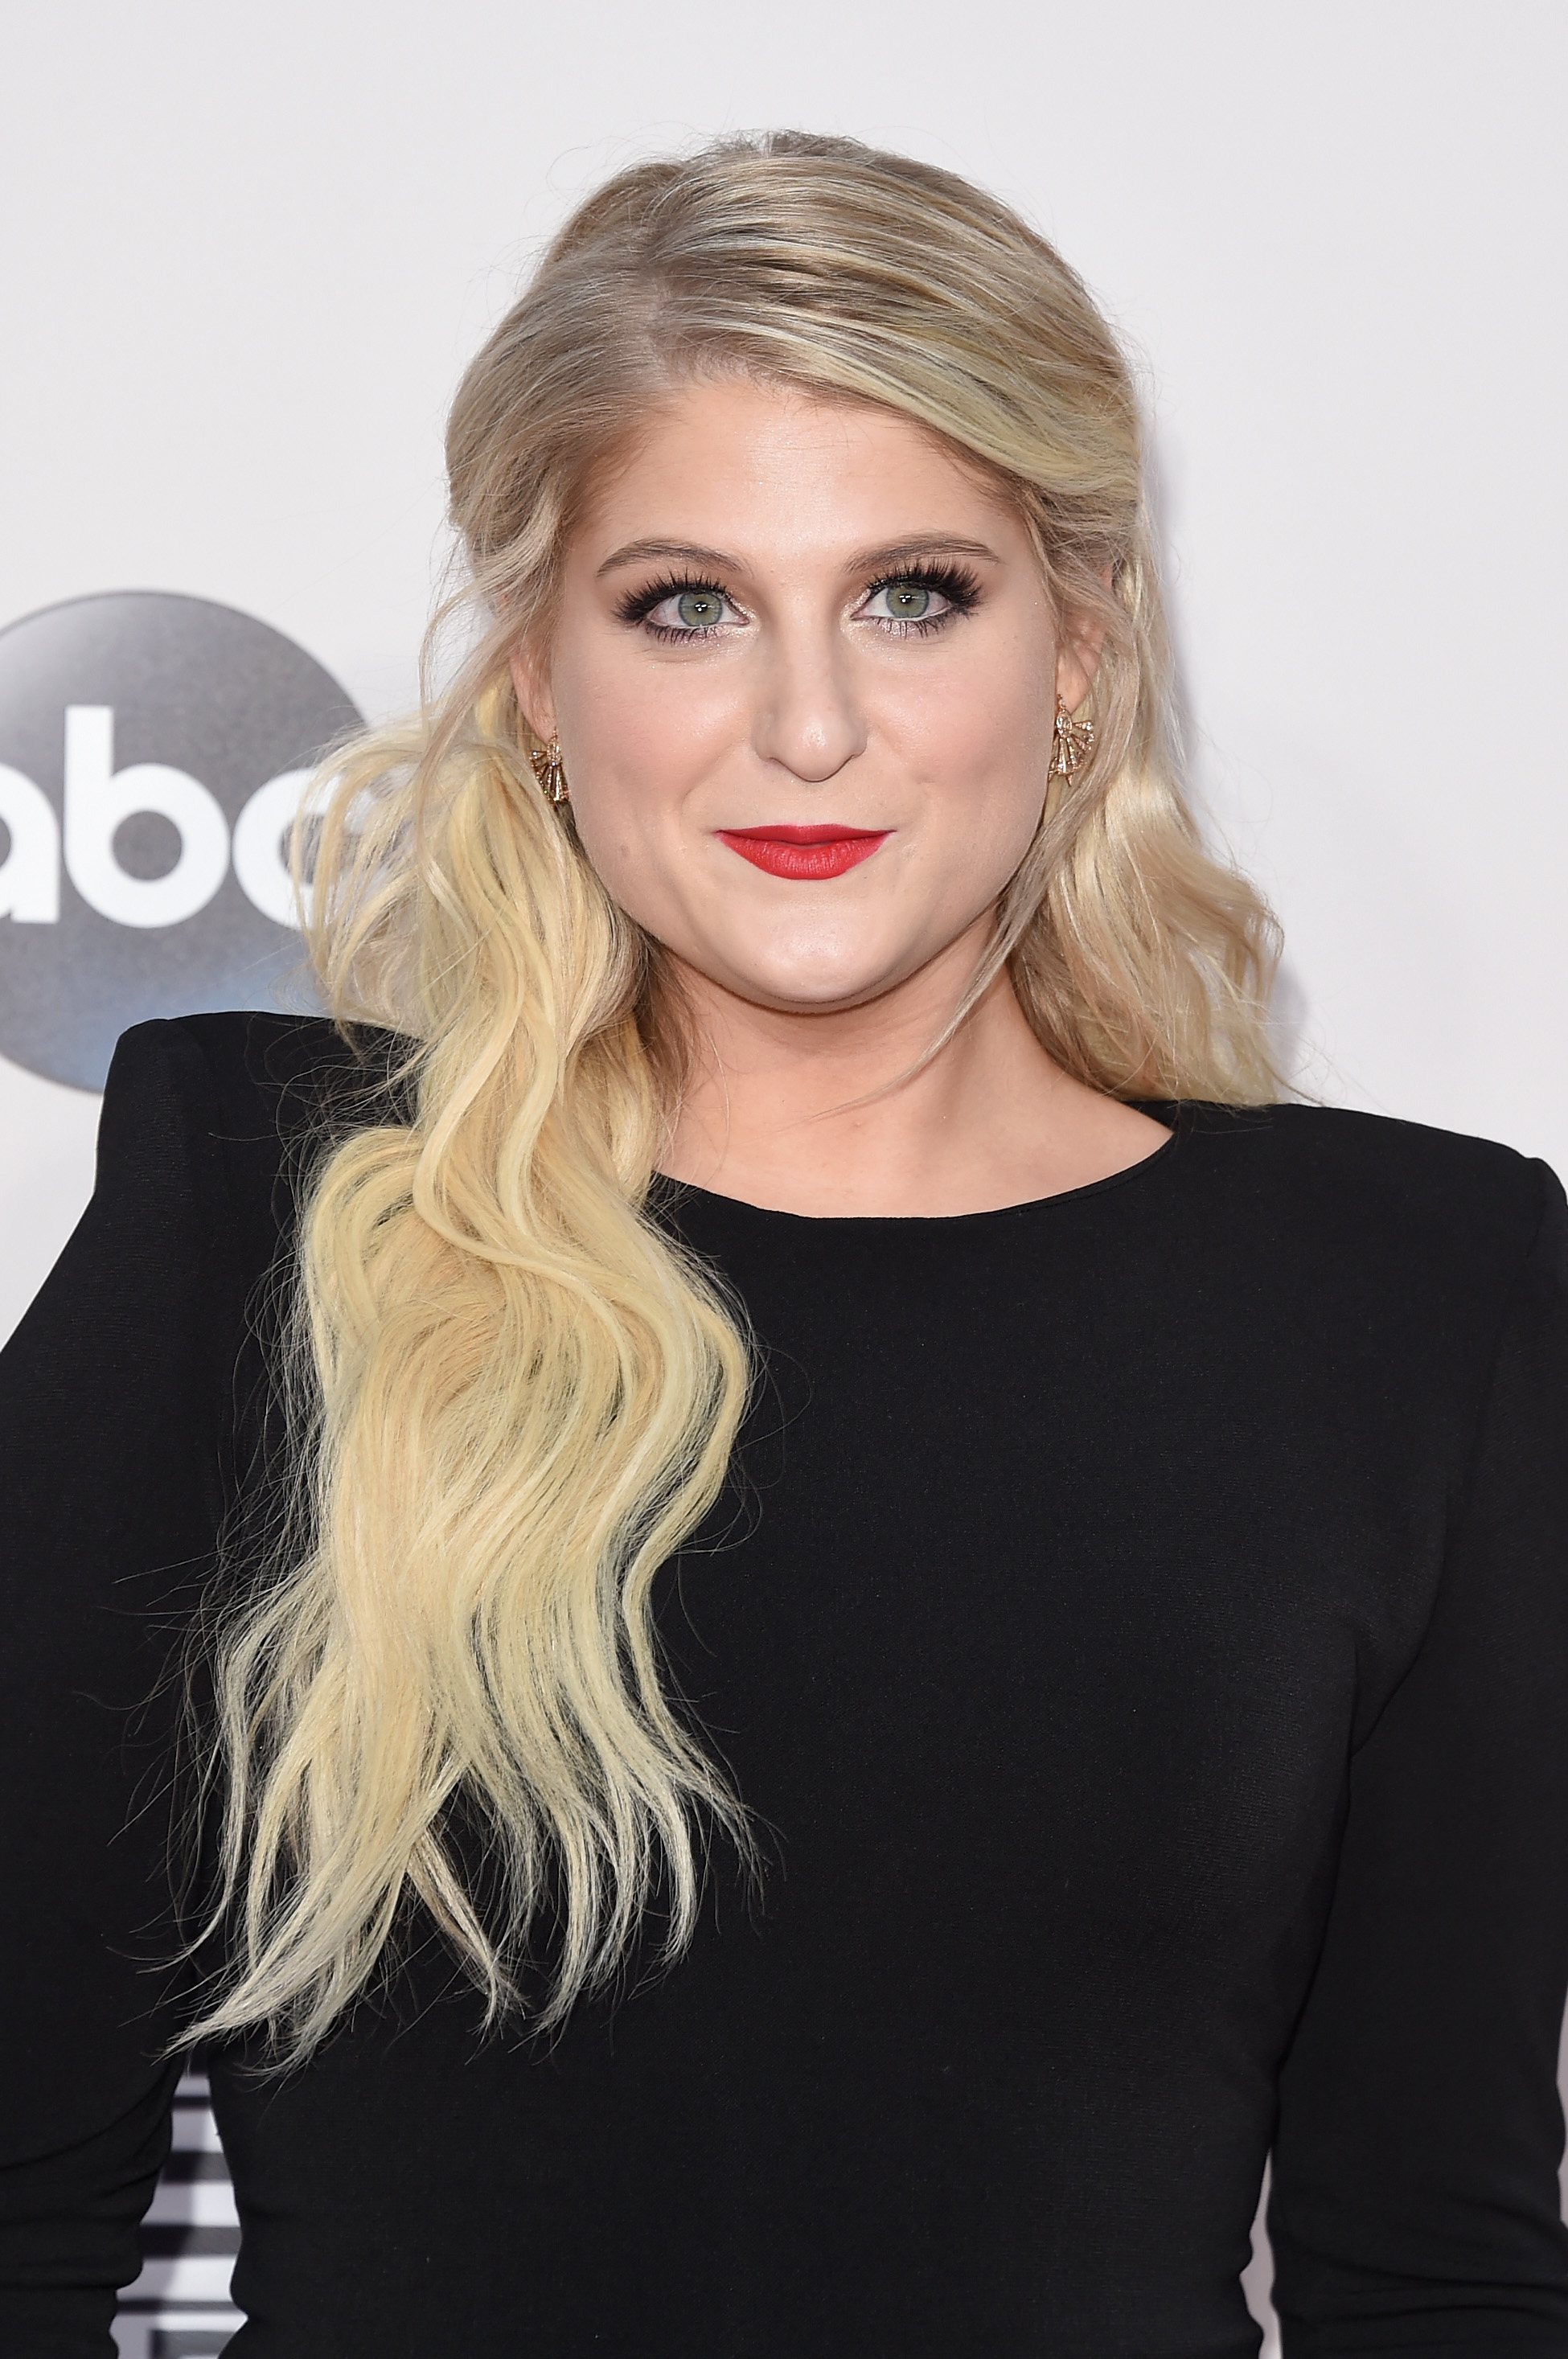 A meghan trainor eye makeup tutorial for everyone no matter what a meghan trainor eye makeup tutorial for everyone no matter what your style videos publicscrutiny Choice Image